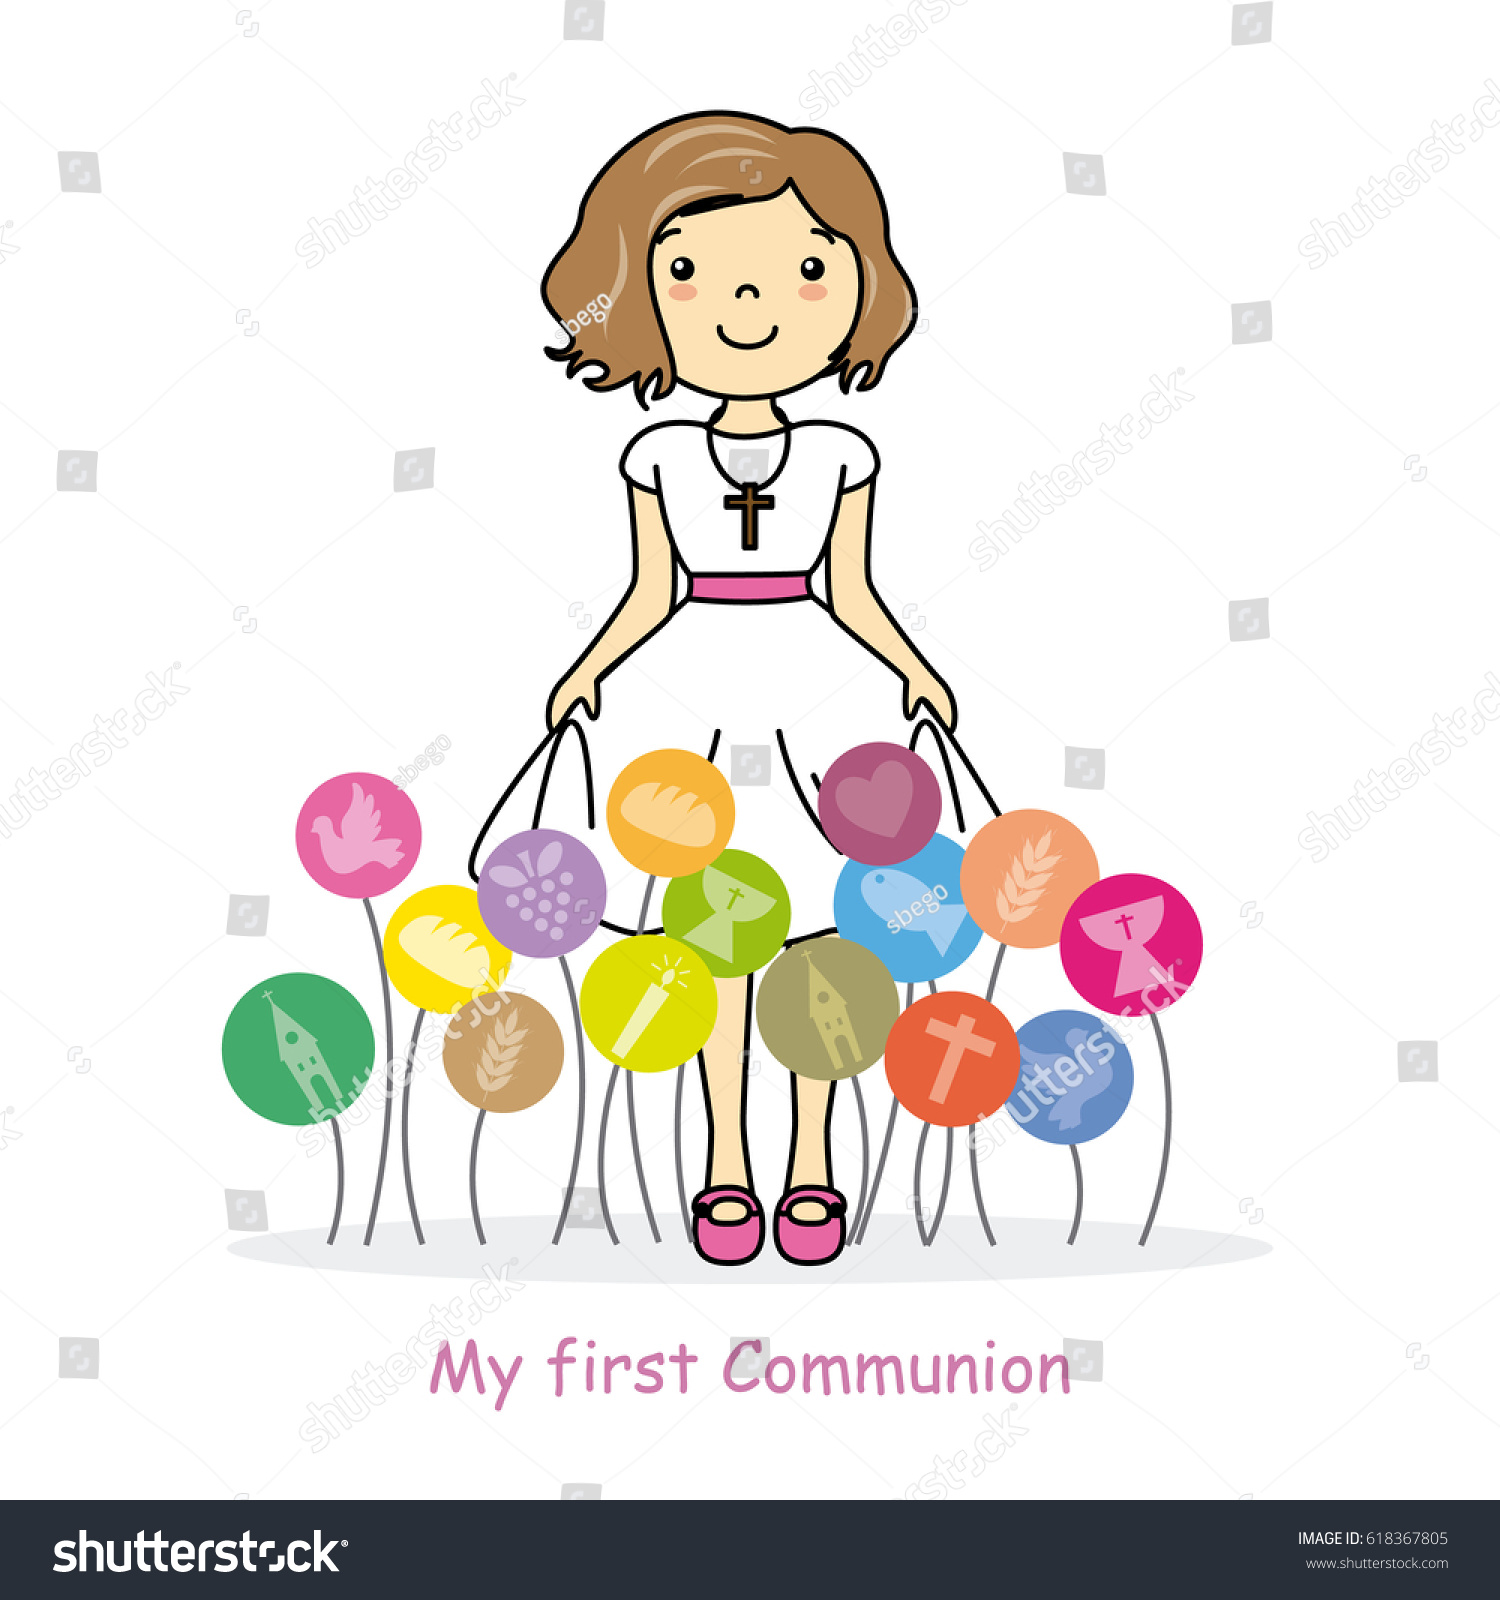 Uncategorized Girlspace my first communion girl space text stock vector 618367805 for text